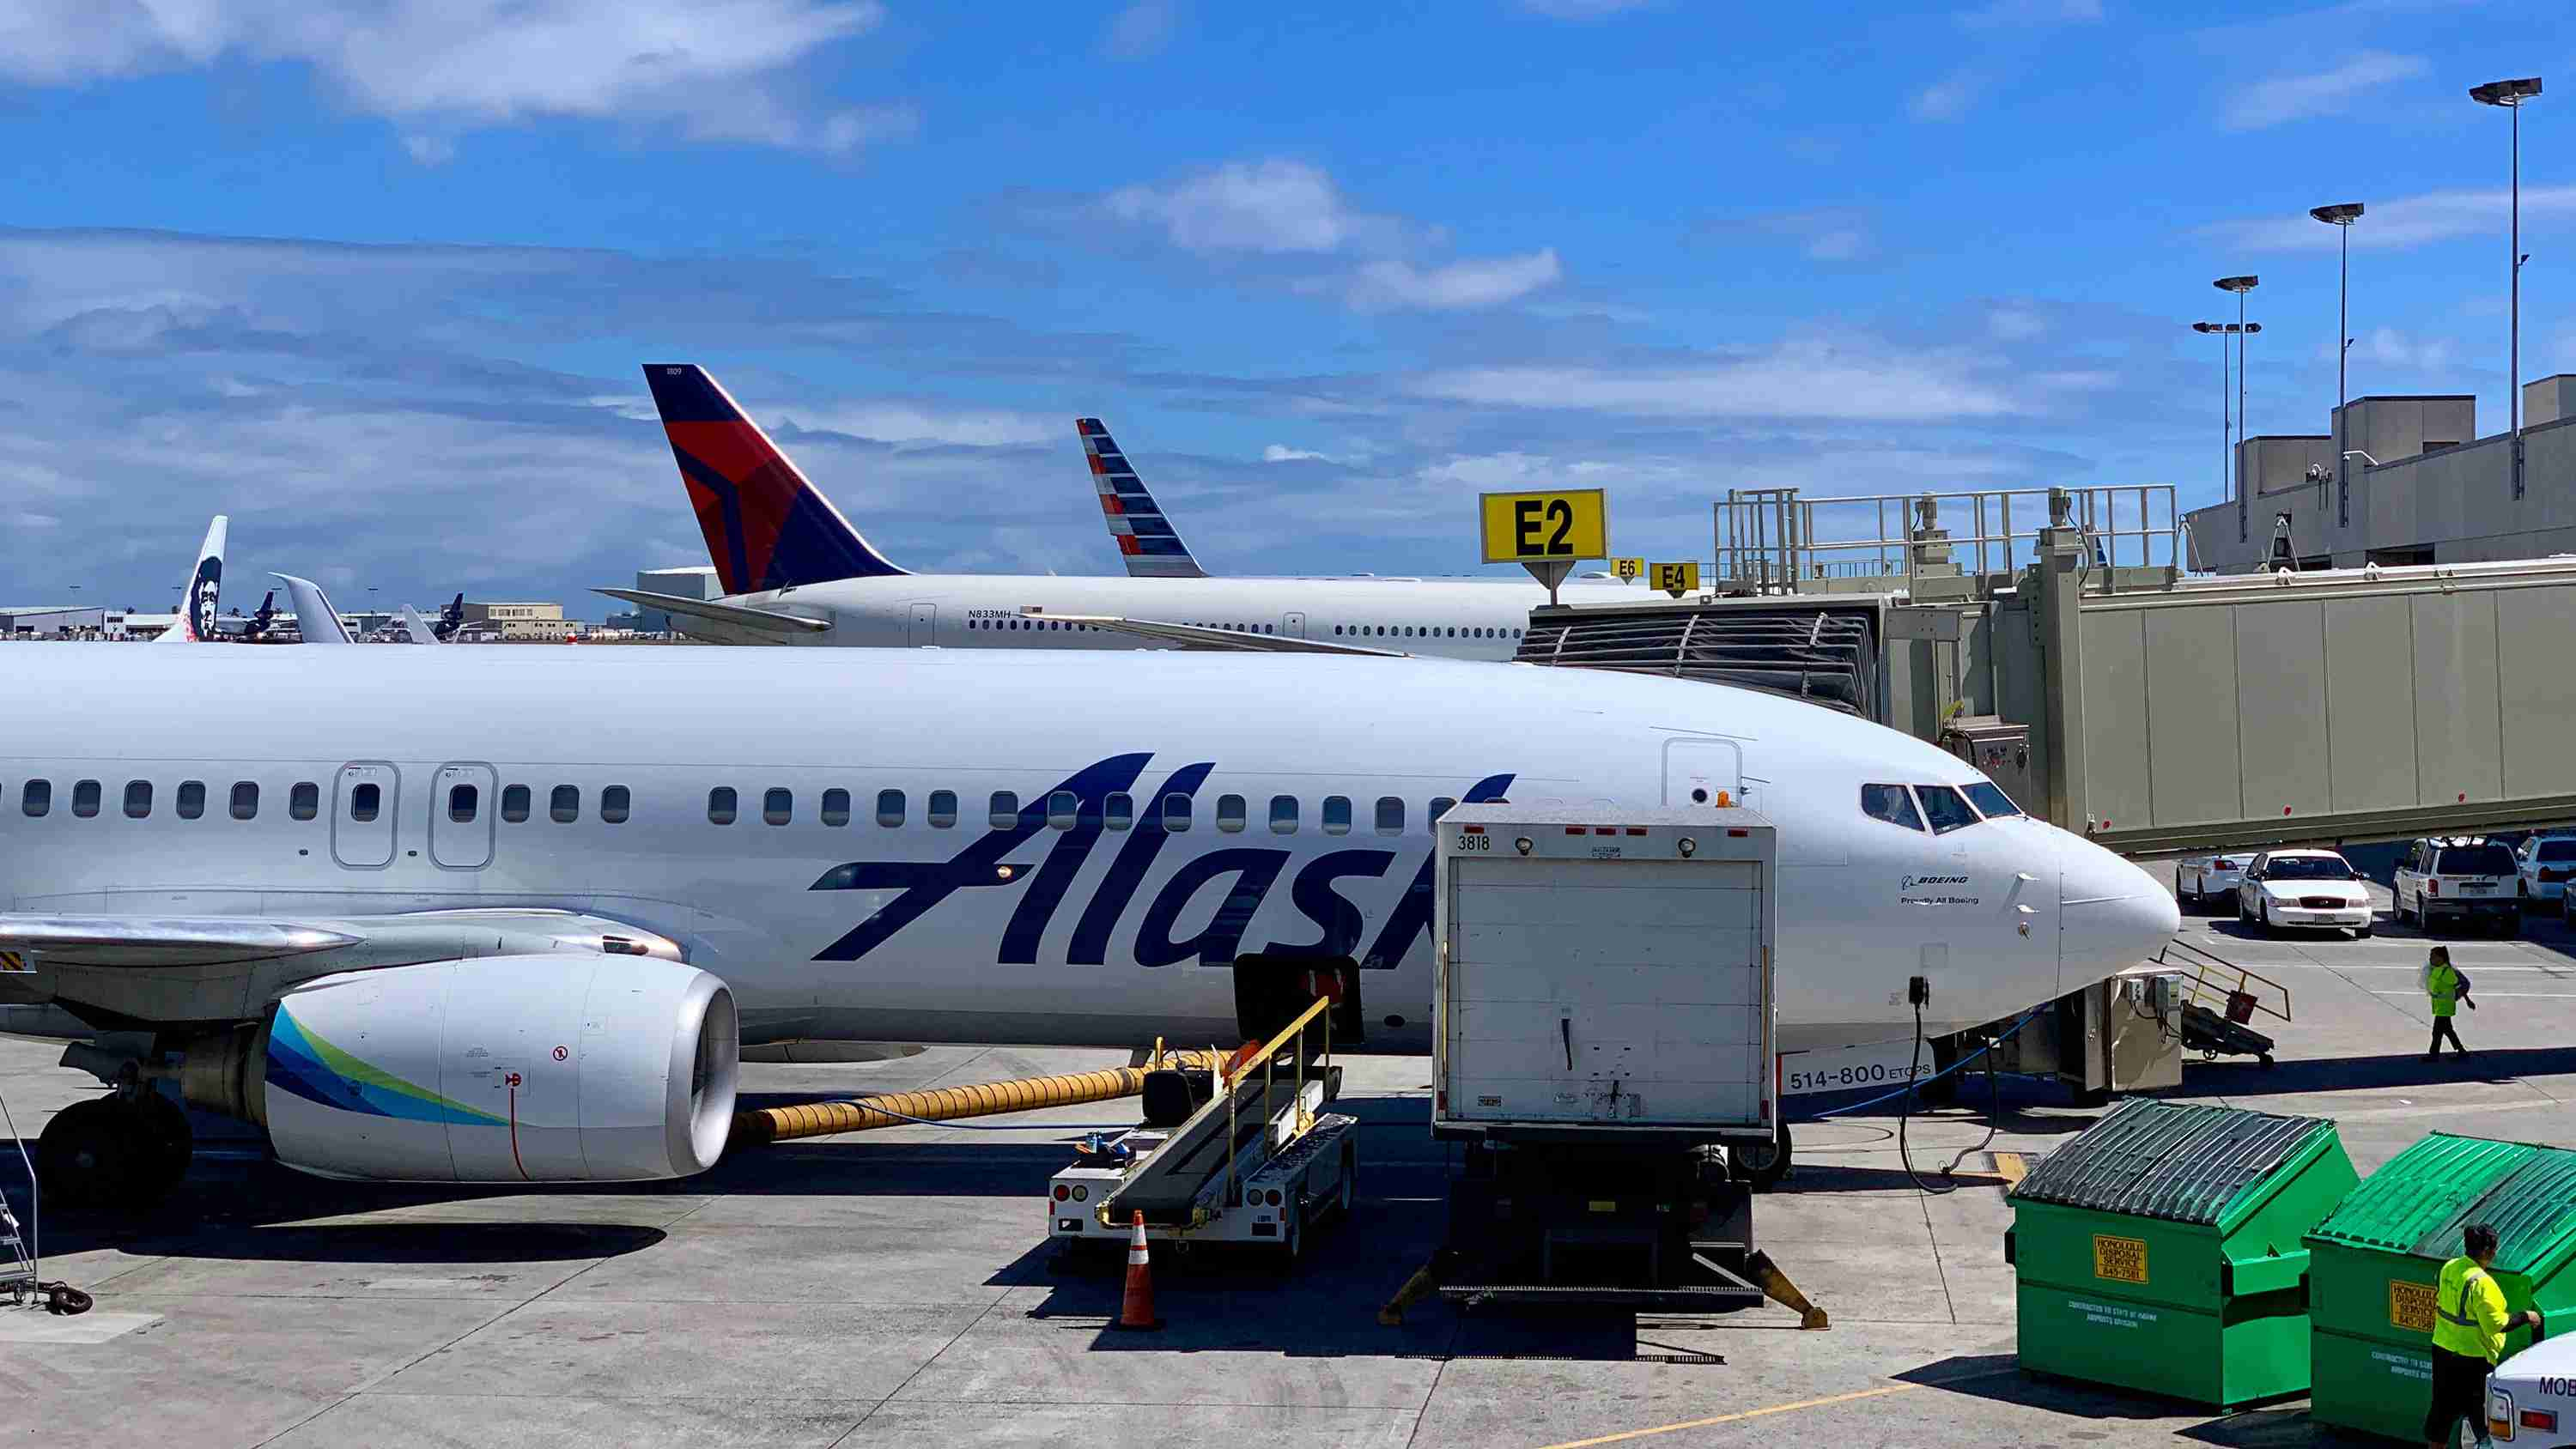 alaska-american-airlines-aa-delta-dl-airport-honolulu-hnl-oahu-hawaii